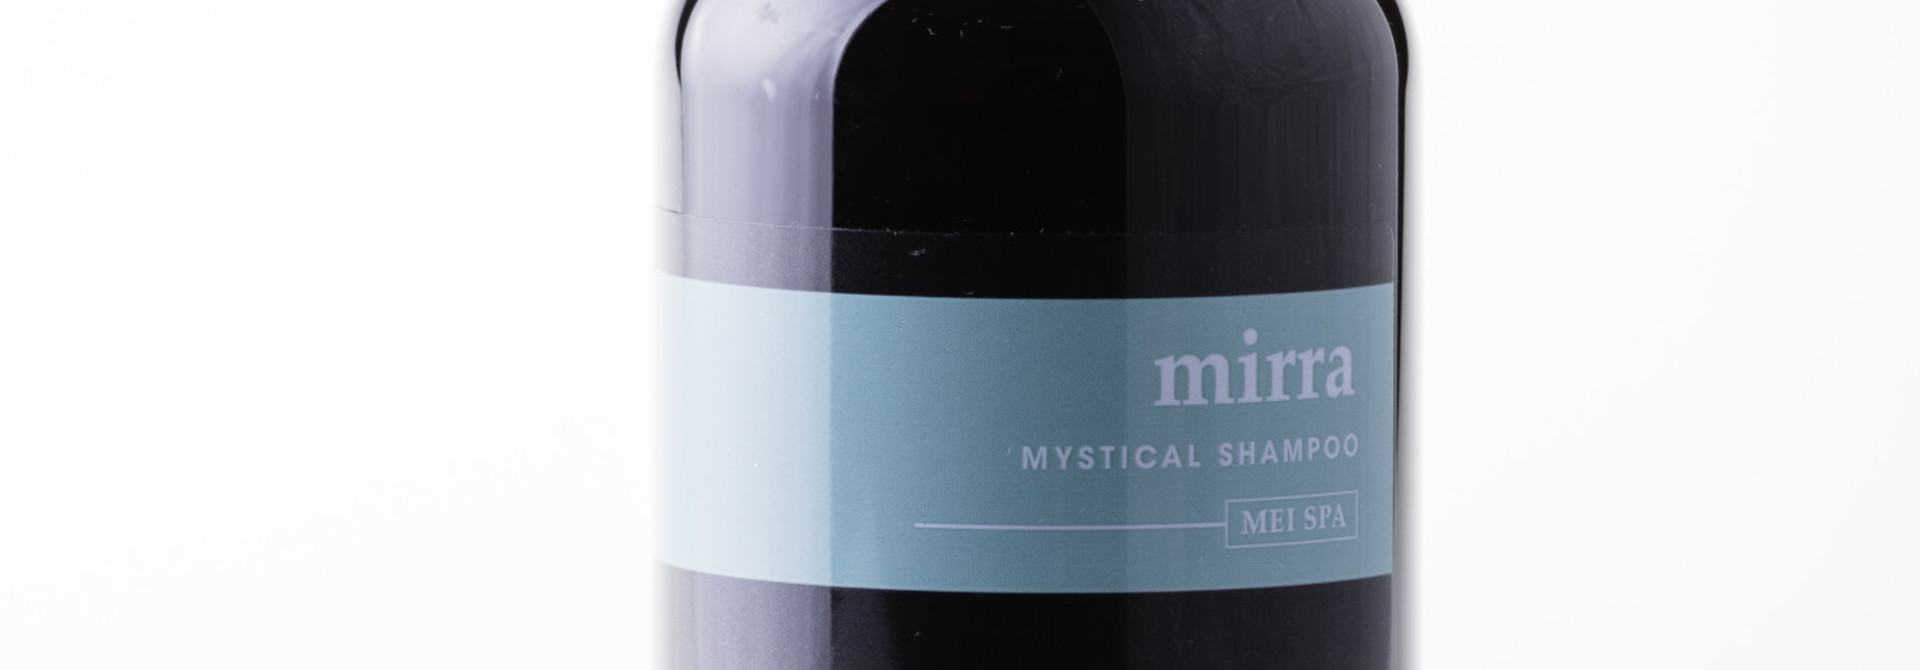 Mirra Mistical Shampoo